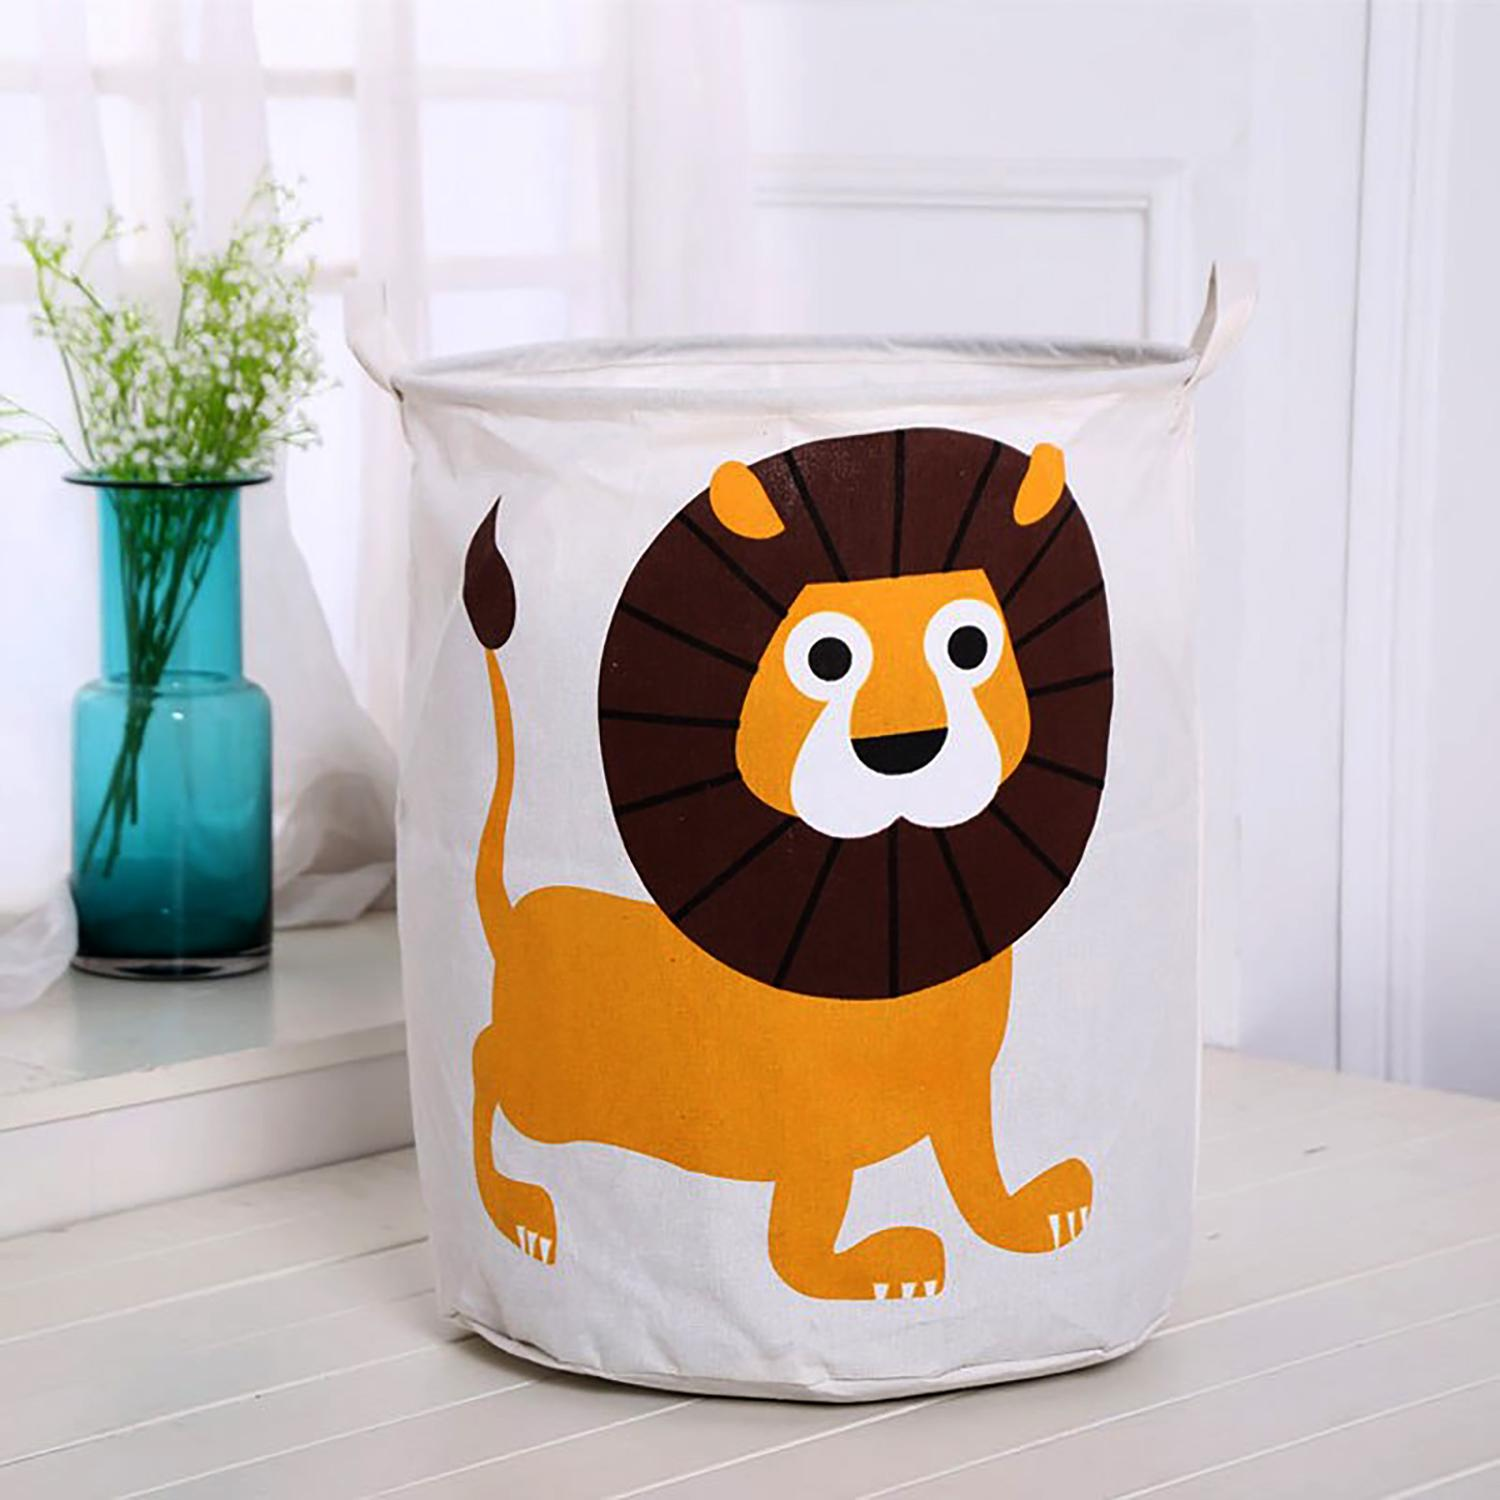 35x45cm Toy Storage Organizer/ Clothes Hamper/ Laundry Organizer- Collapsible Bin W/ Cartoon Print By Trikkis.